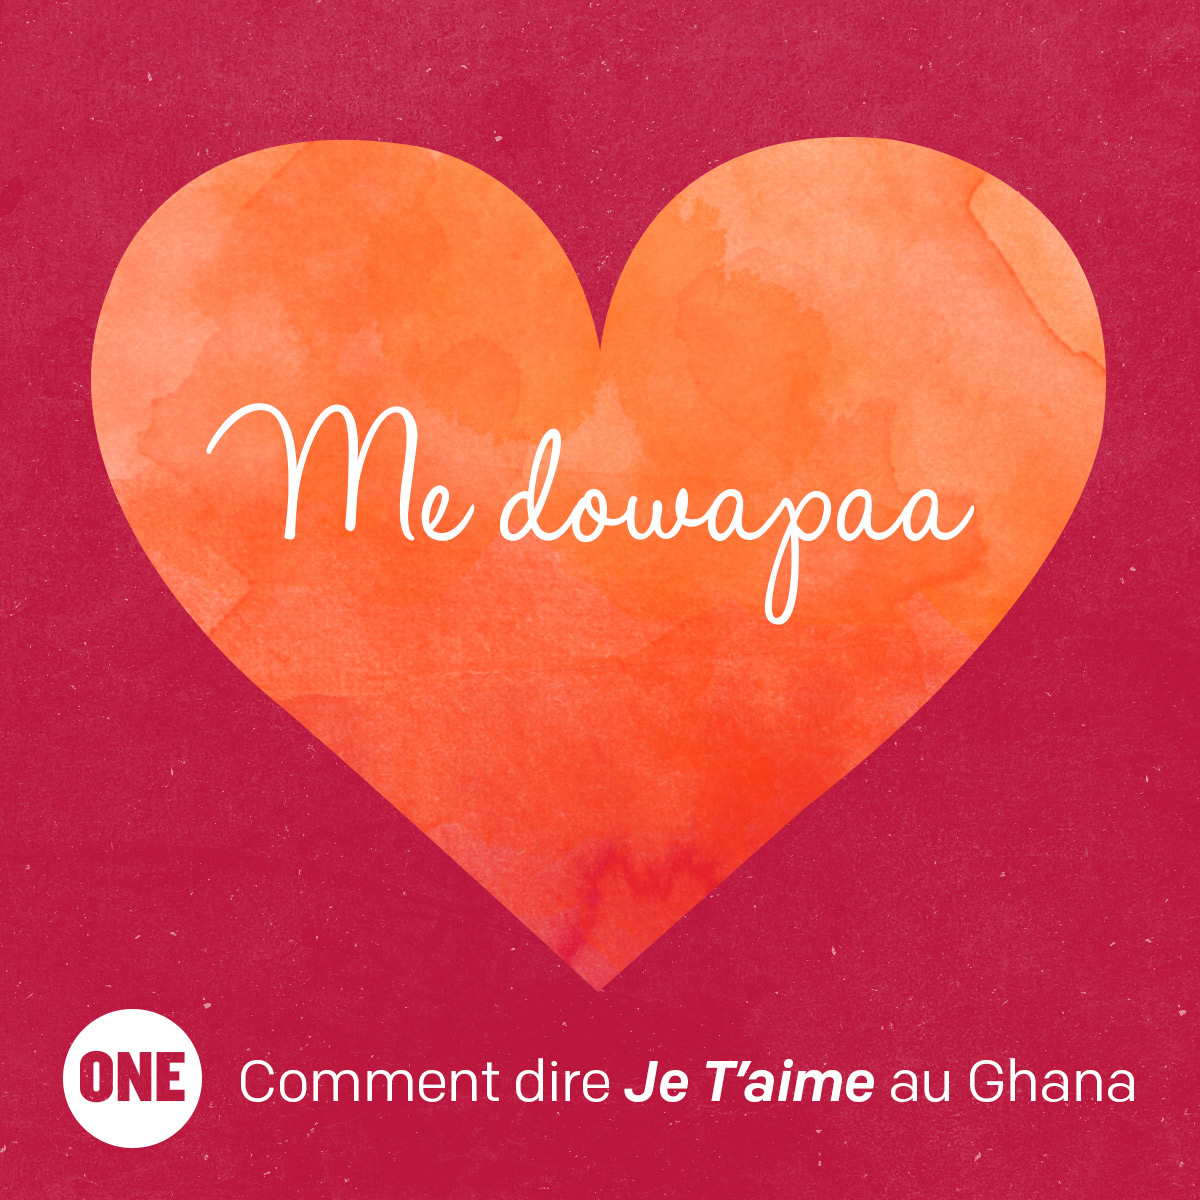 22US2014(valentine-card-share-graphic)_ghana_FRENCH (2)